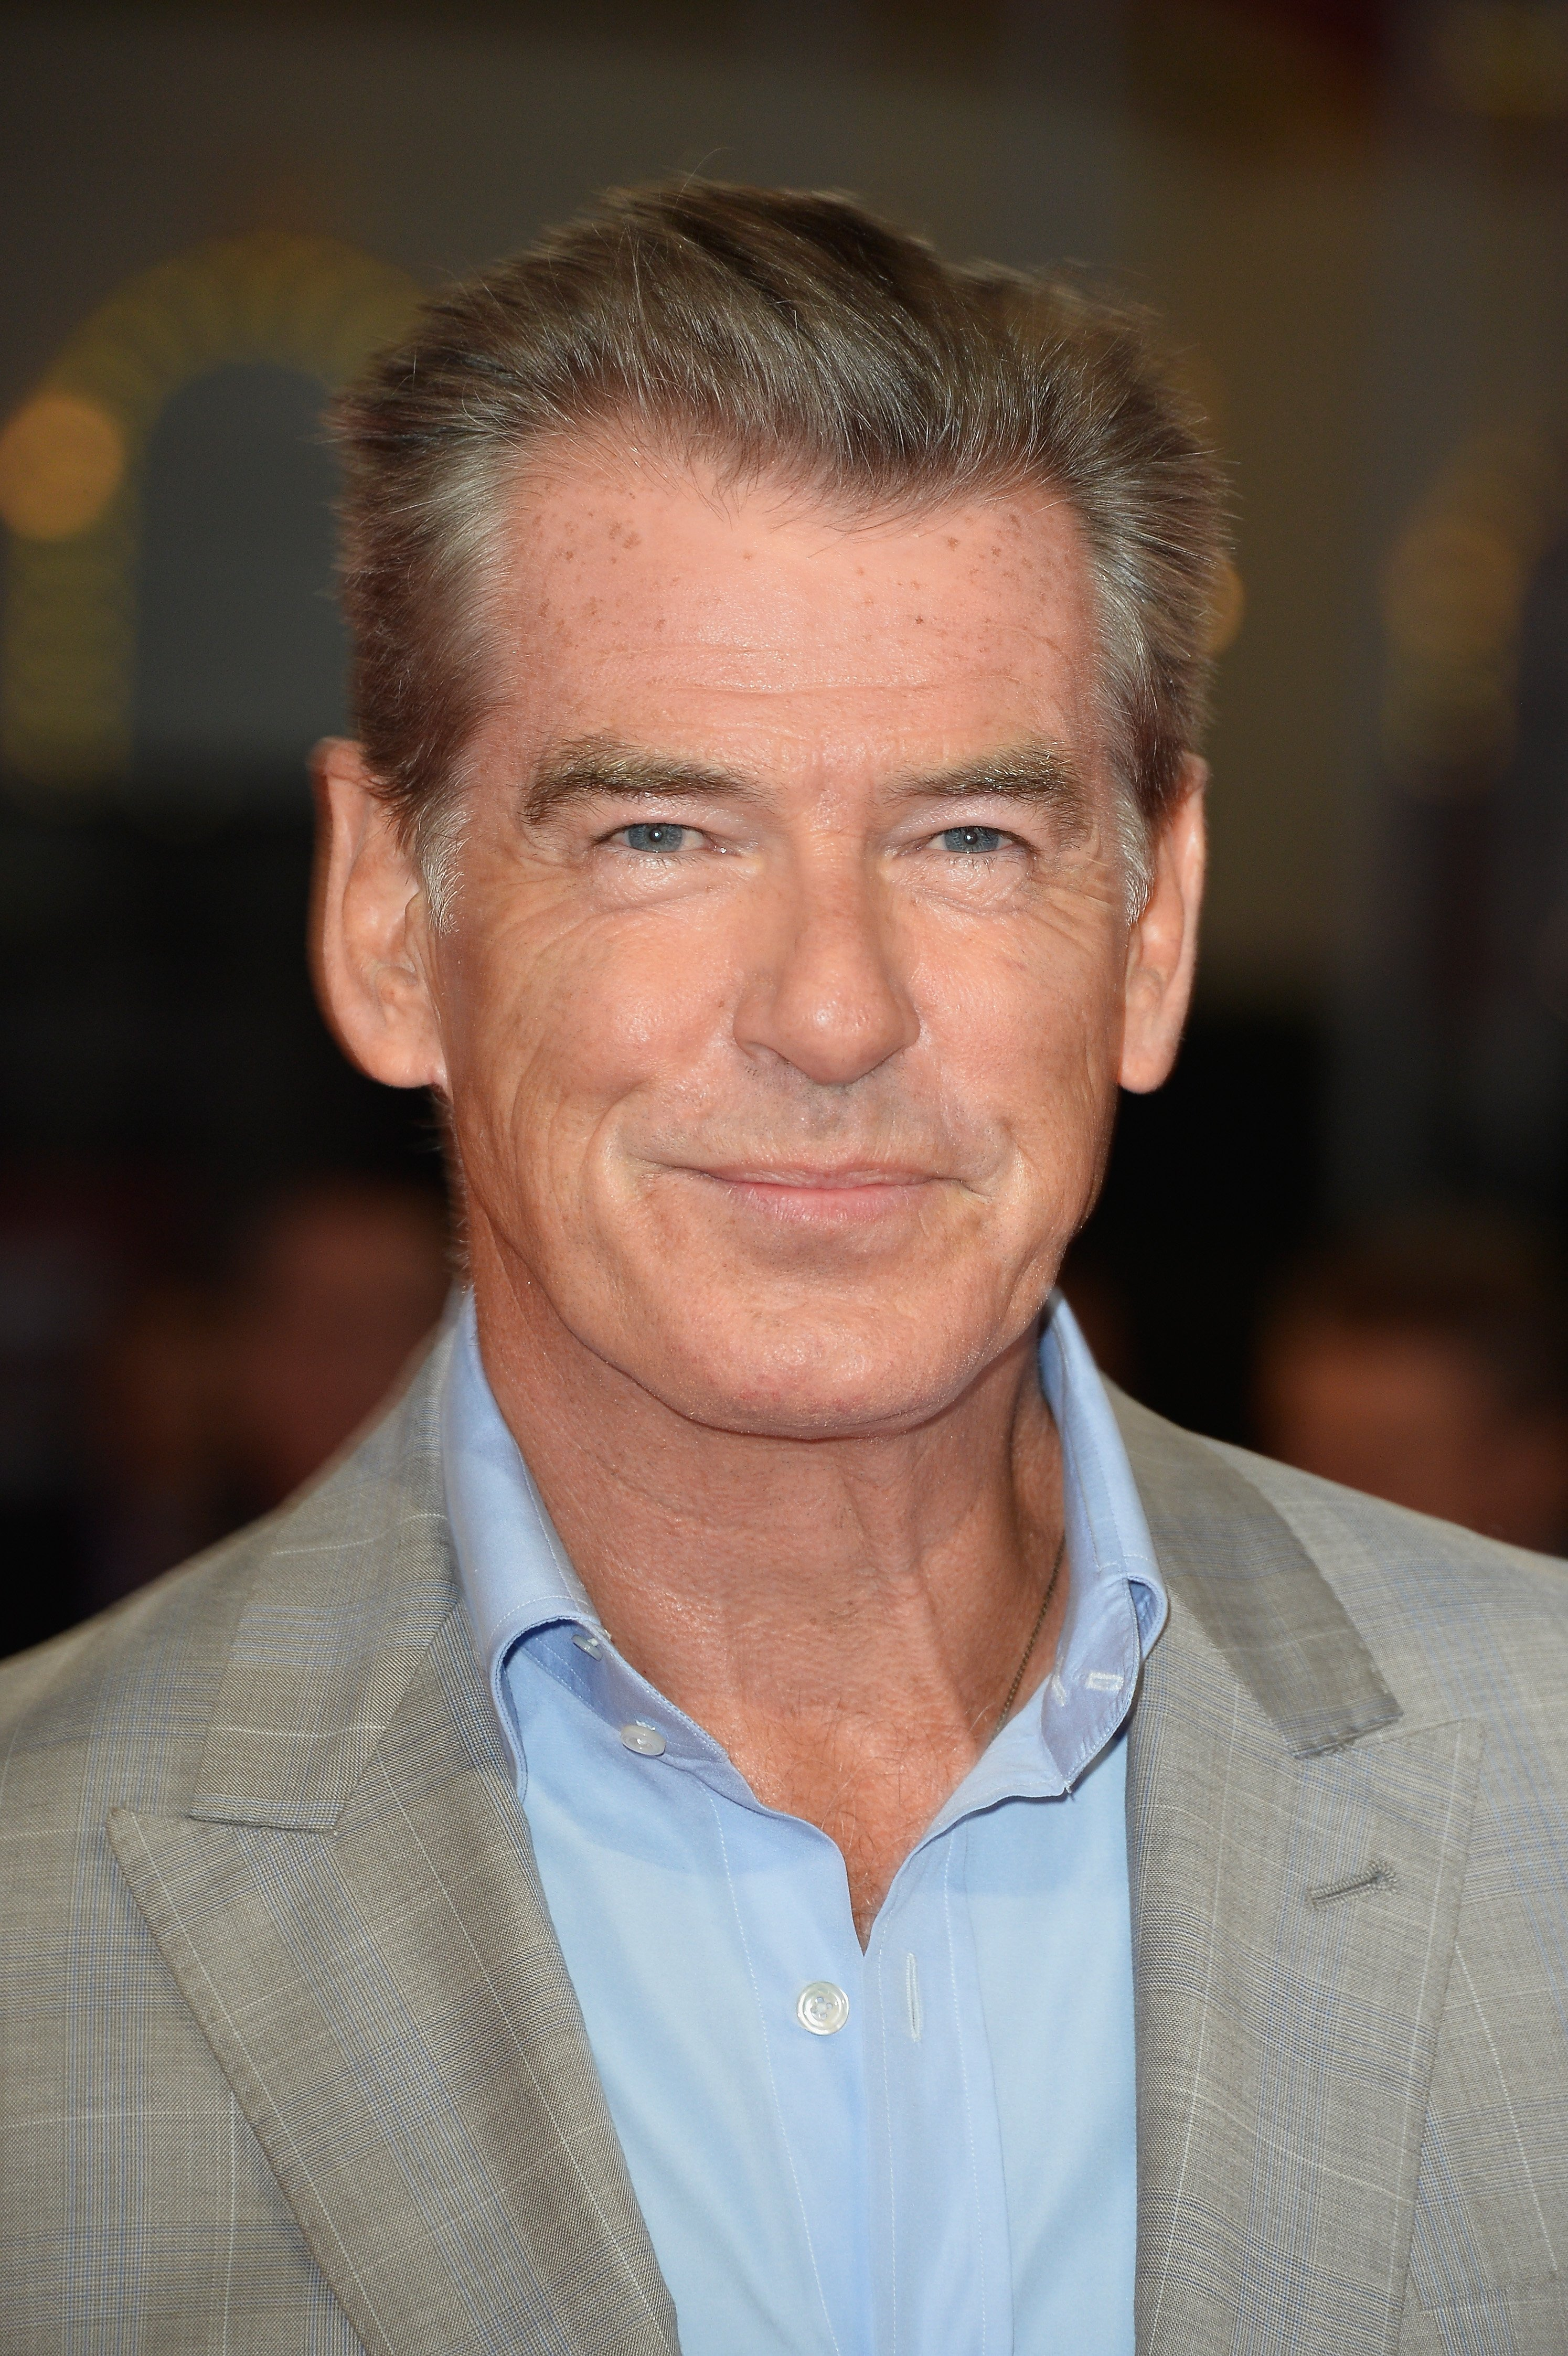 Pierce Brosnam attends the 'Pasolini' premiere on September 11, 2014 in Deauville, France. | Photo: GettyImages